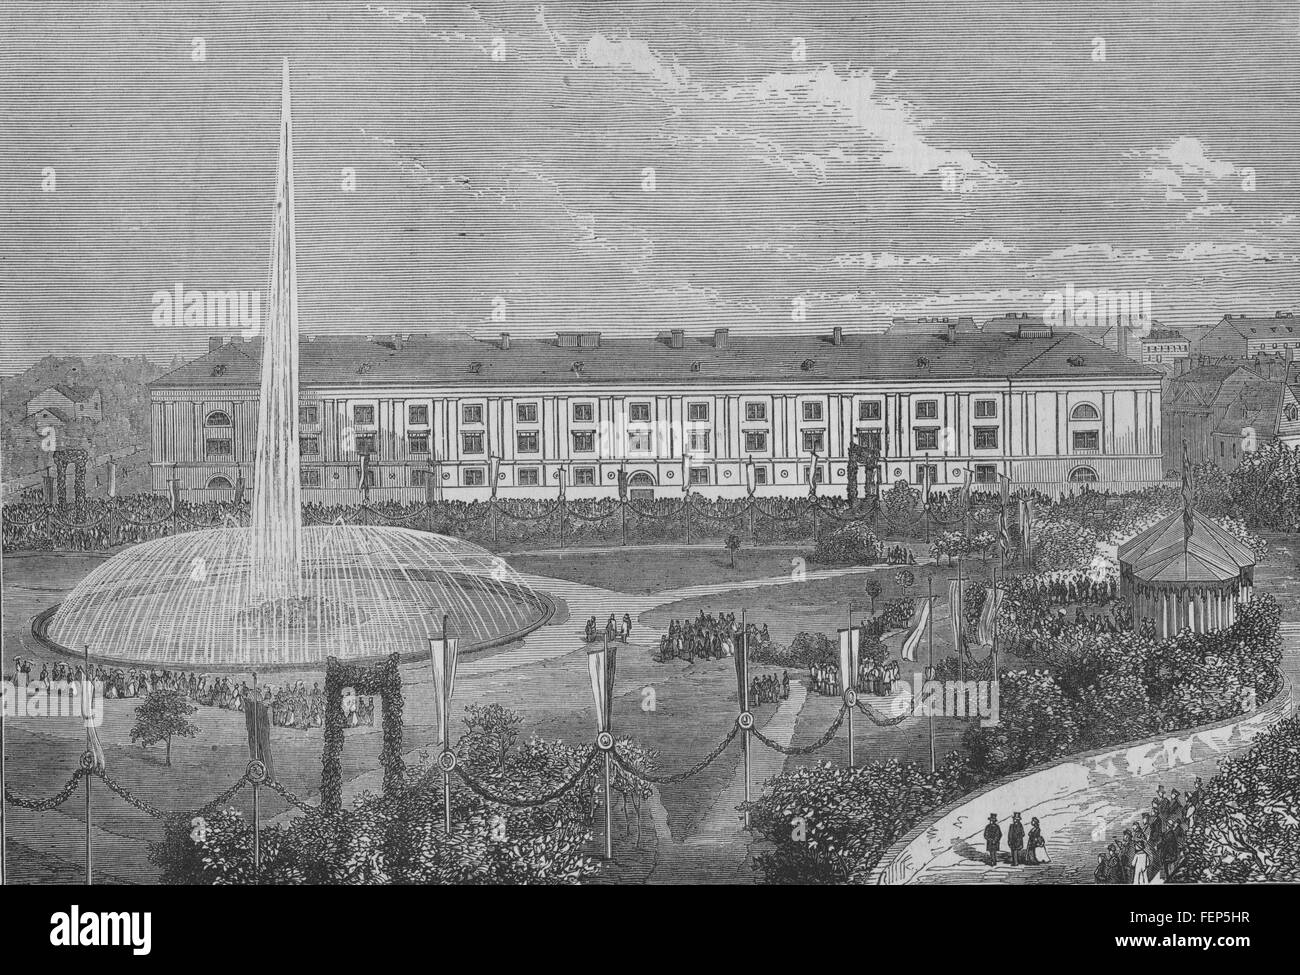 VIENNA WIEN Opening of the new city water-works 1873. Illustrated London News - Stock Image